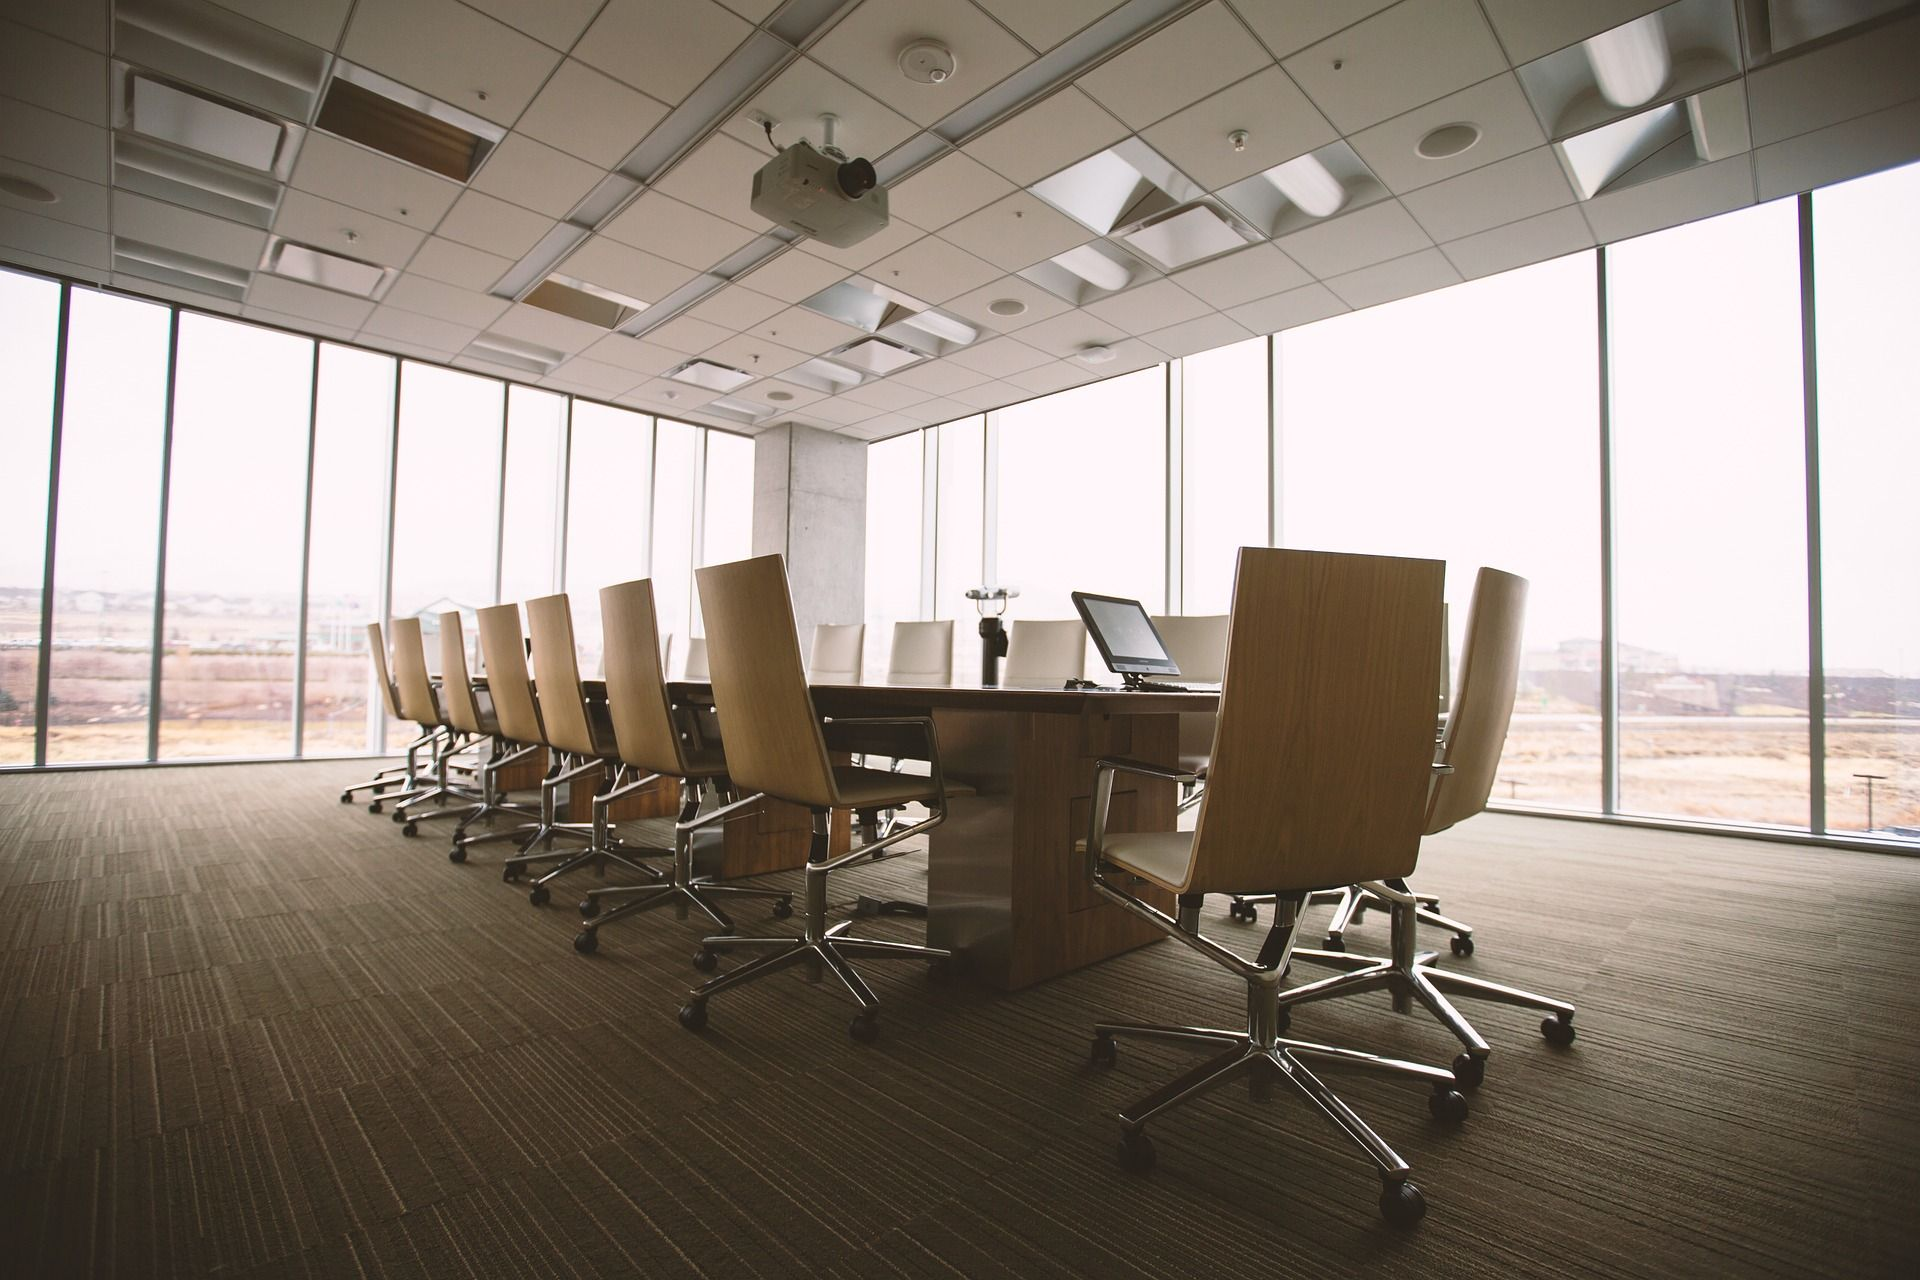 For a good video conference, you need the best video conference equipment.